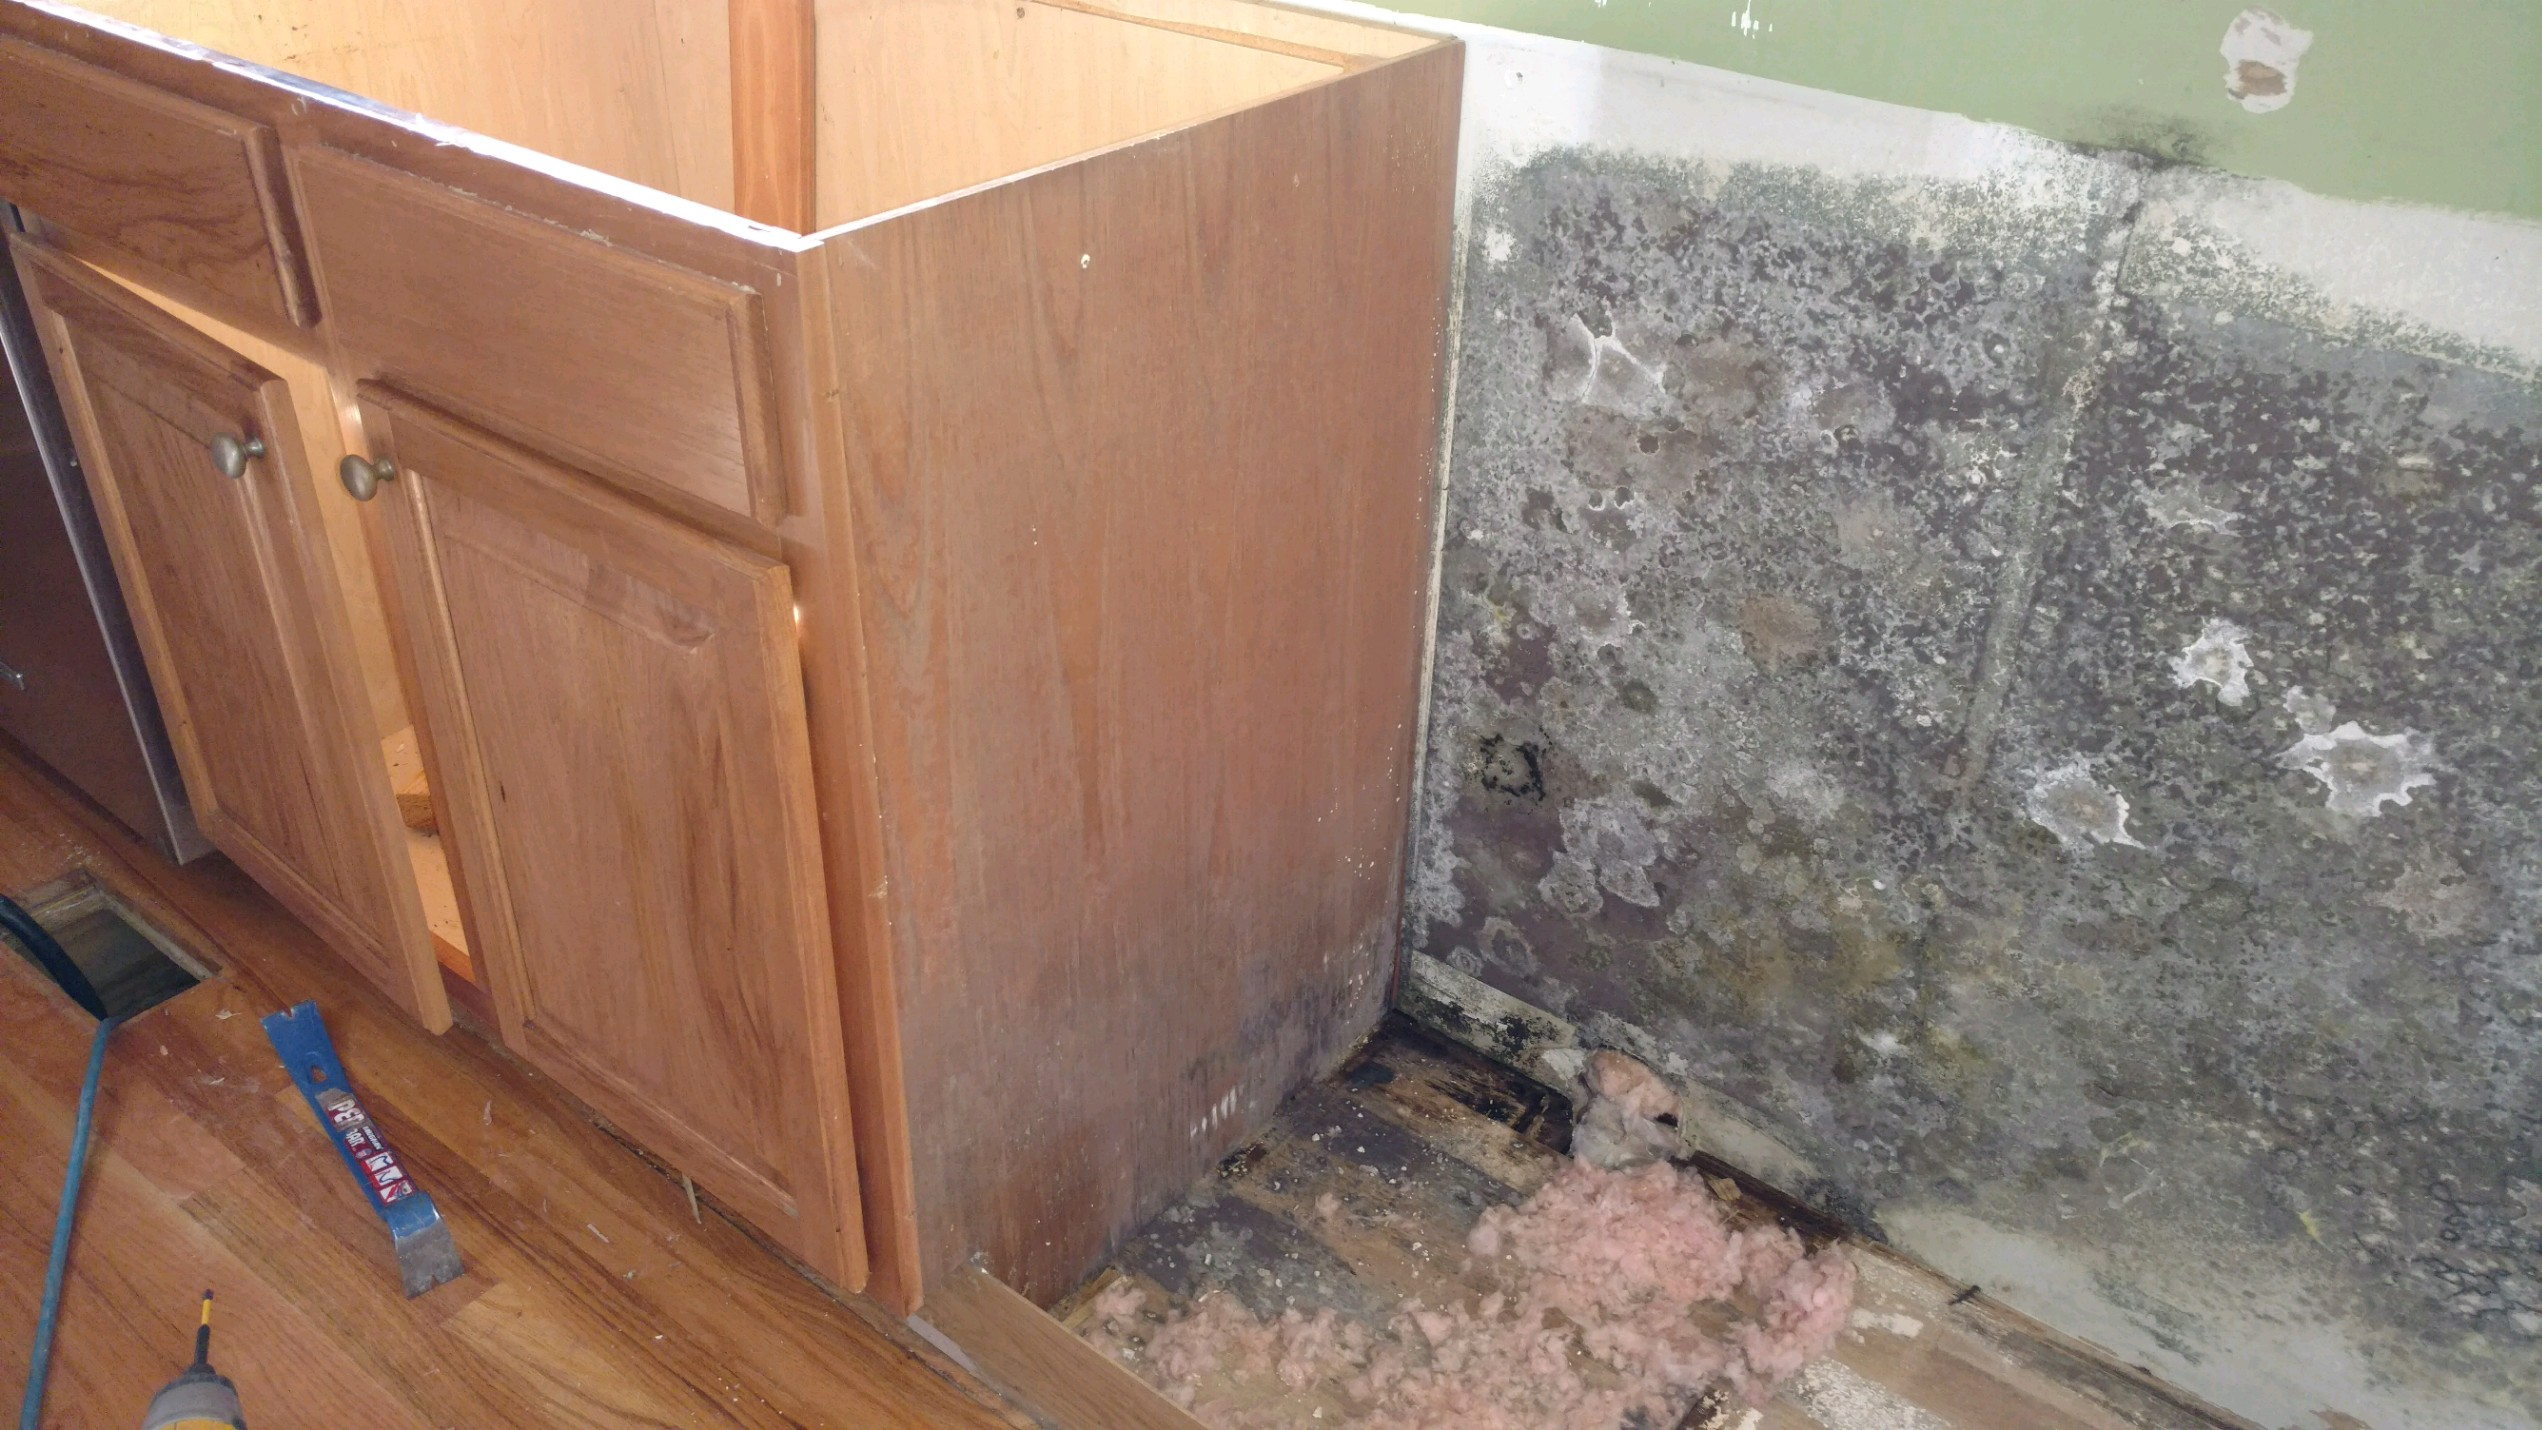 Mold Growth Beside Cabinet